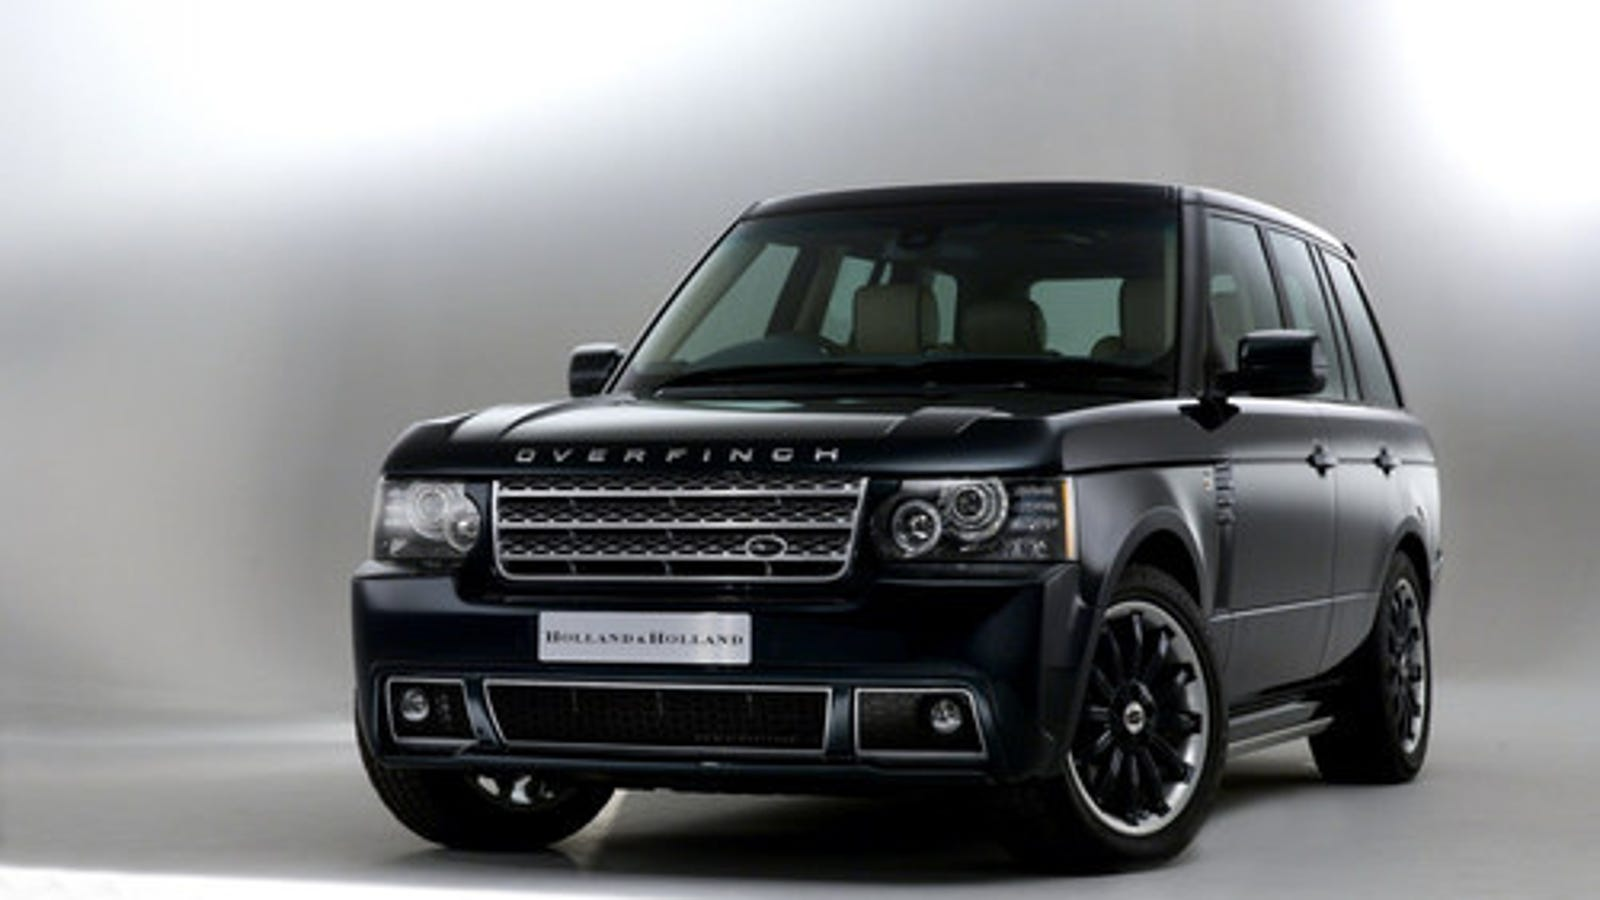 overfinch land rover by holland holland. Black Bedroom Furniture Sets. Home Design Ideas